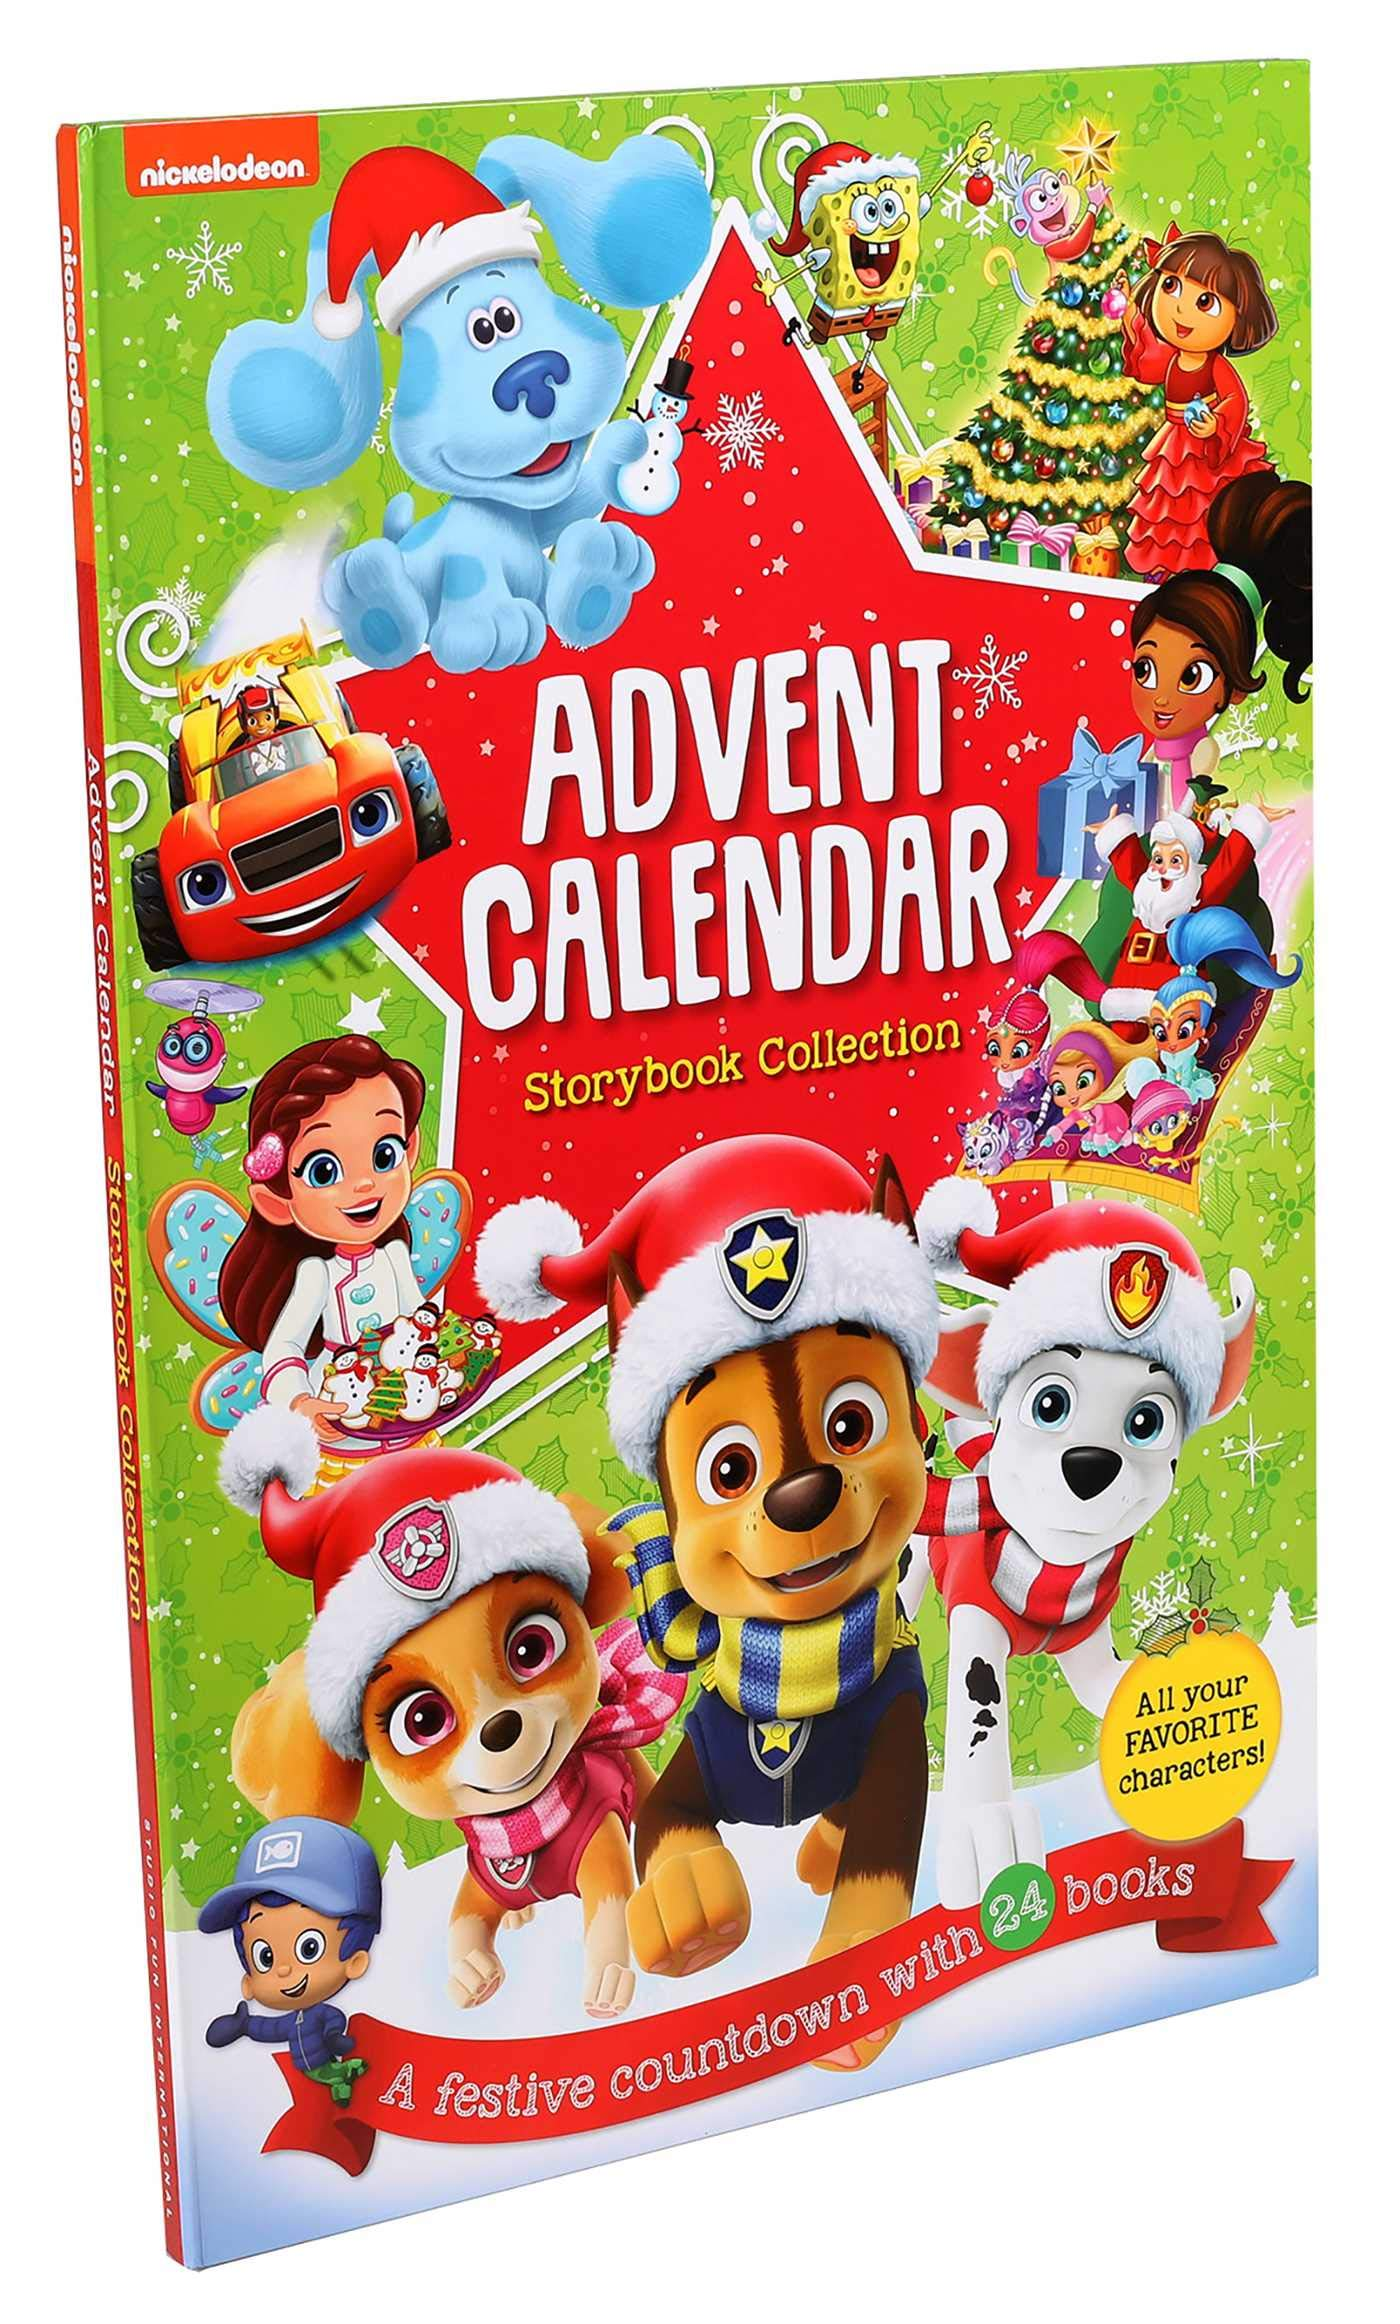 Nickelodeon Christmas Cartoon Countdown 2020 2020 Nickelodeon Storybook Advent Calendar Available Now + Full